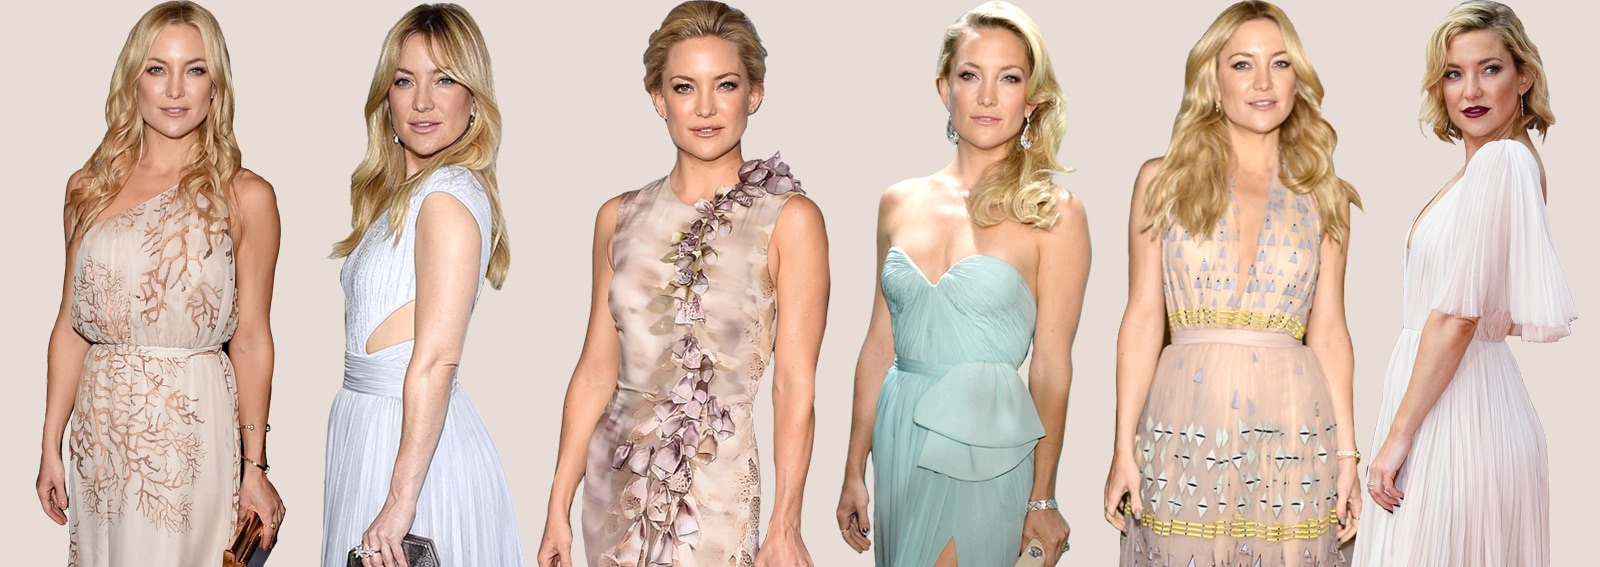 cover kate hudson i look più belli dekstop